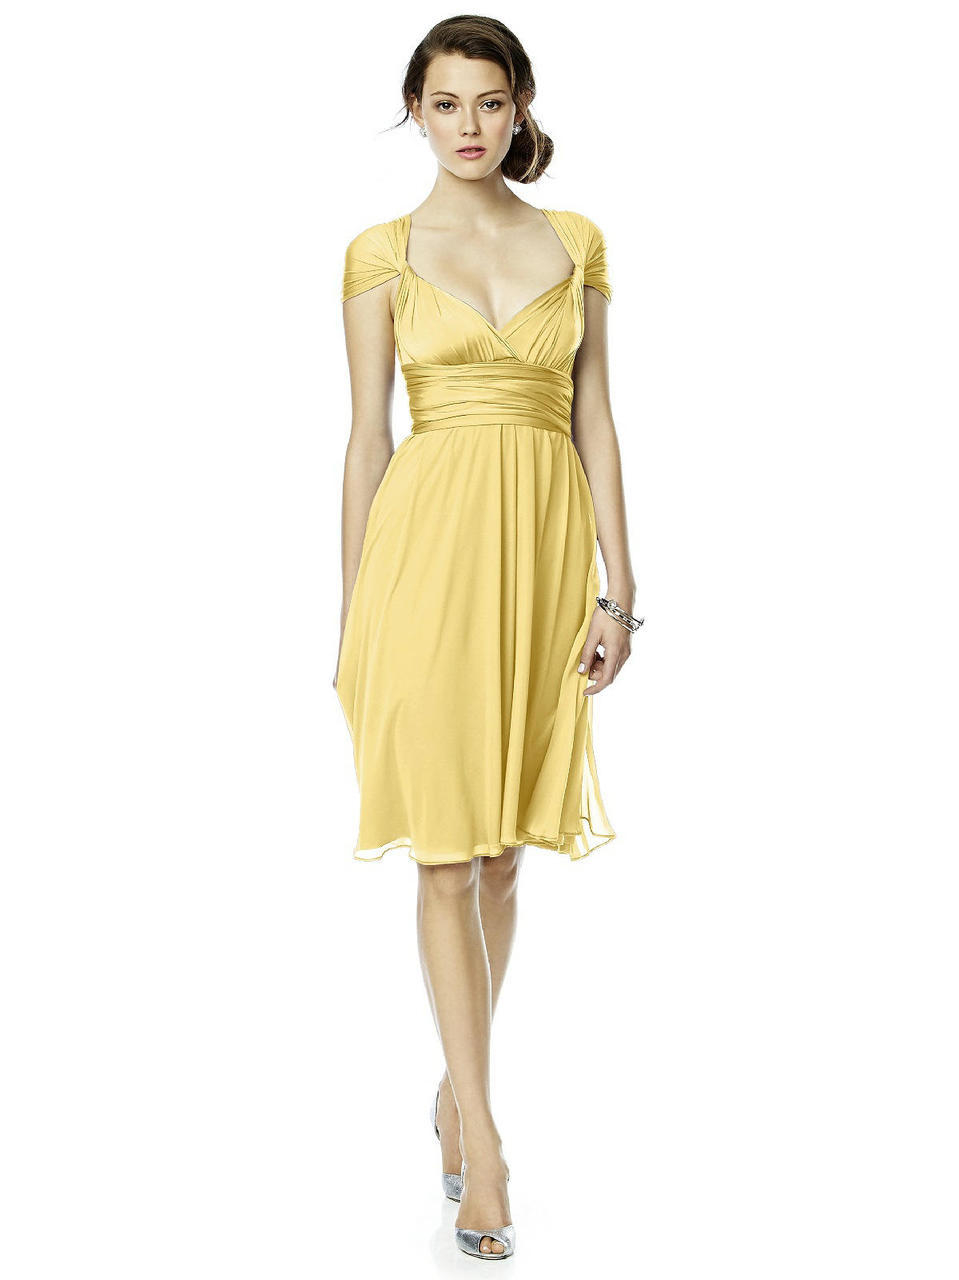 Lyst dessy collection luxtwist dress in buttercup in yellow dessy collection ombrellifo Image collections